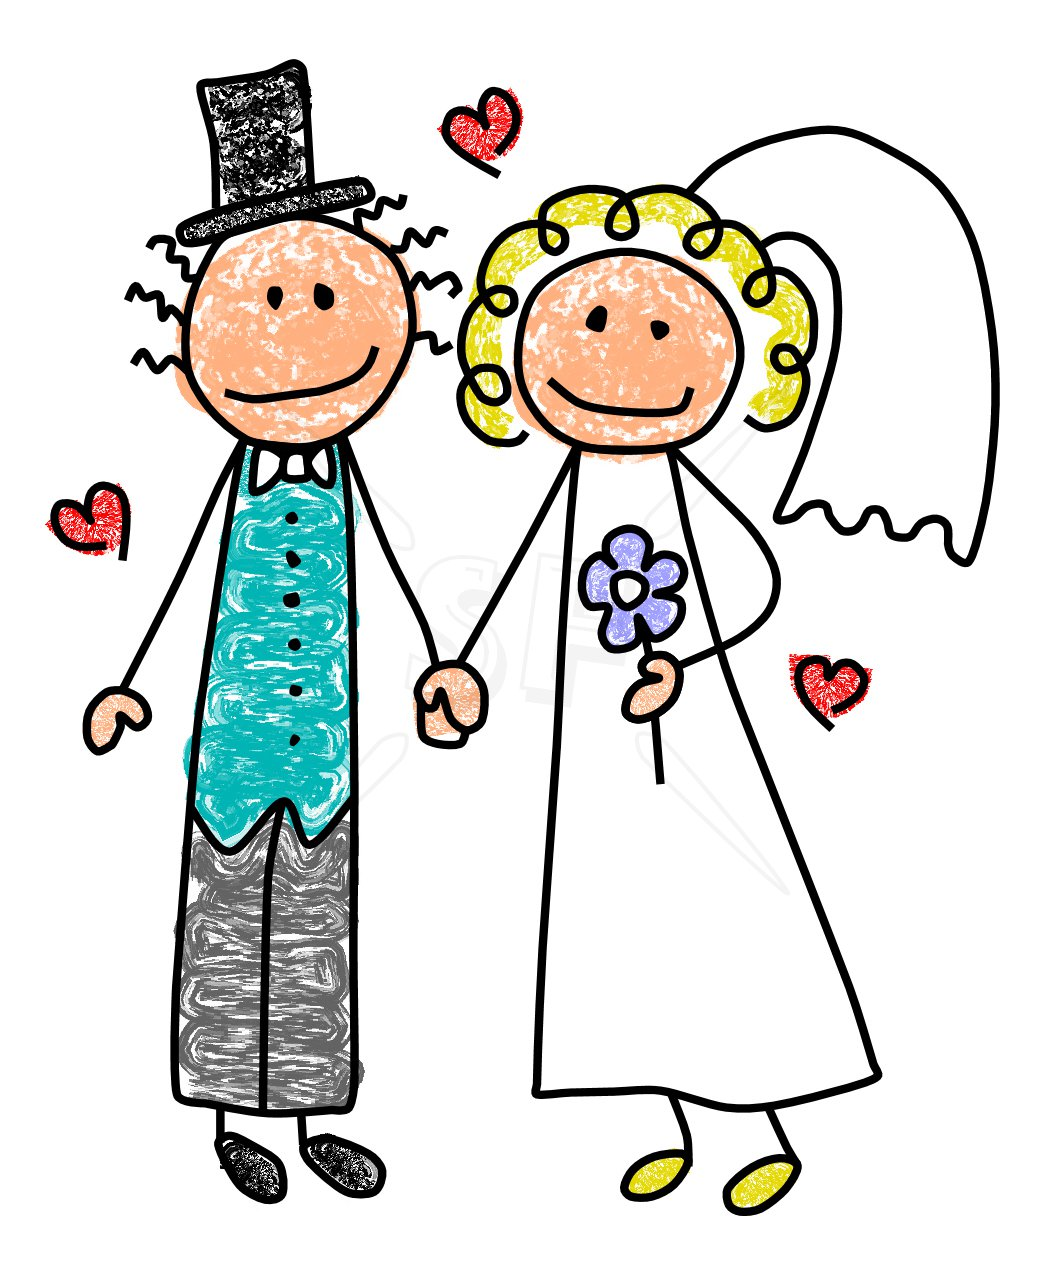 svg free stock Weddings free clipart cute. Cartoon wedding couple download.